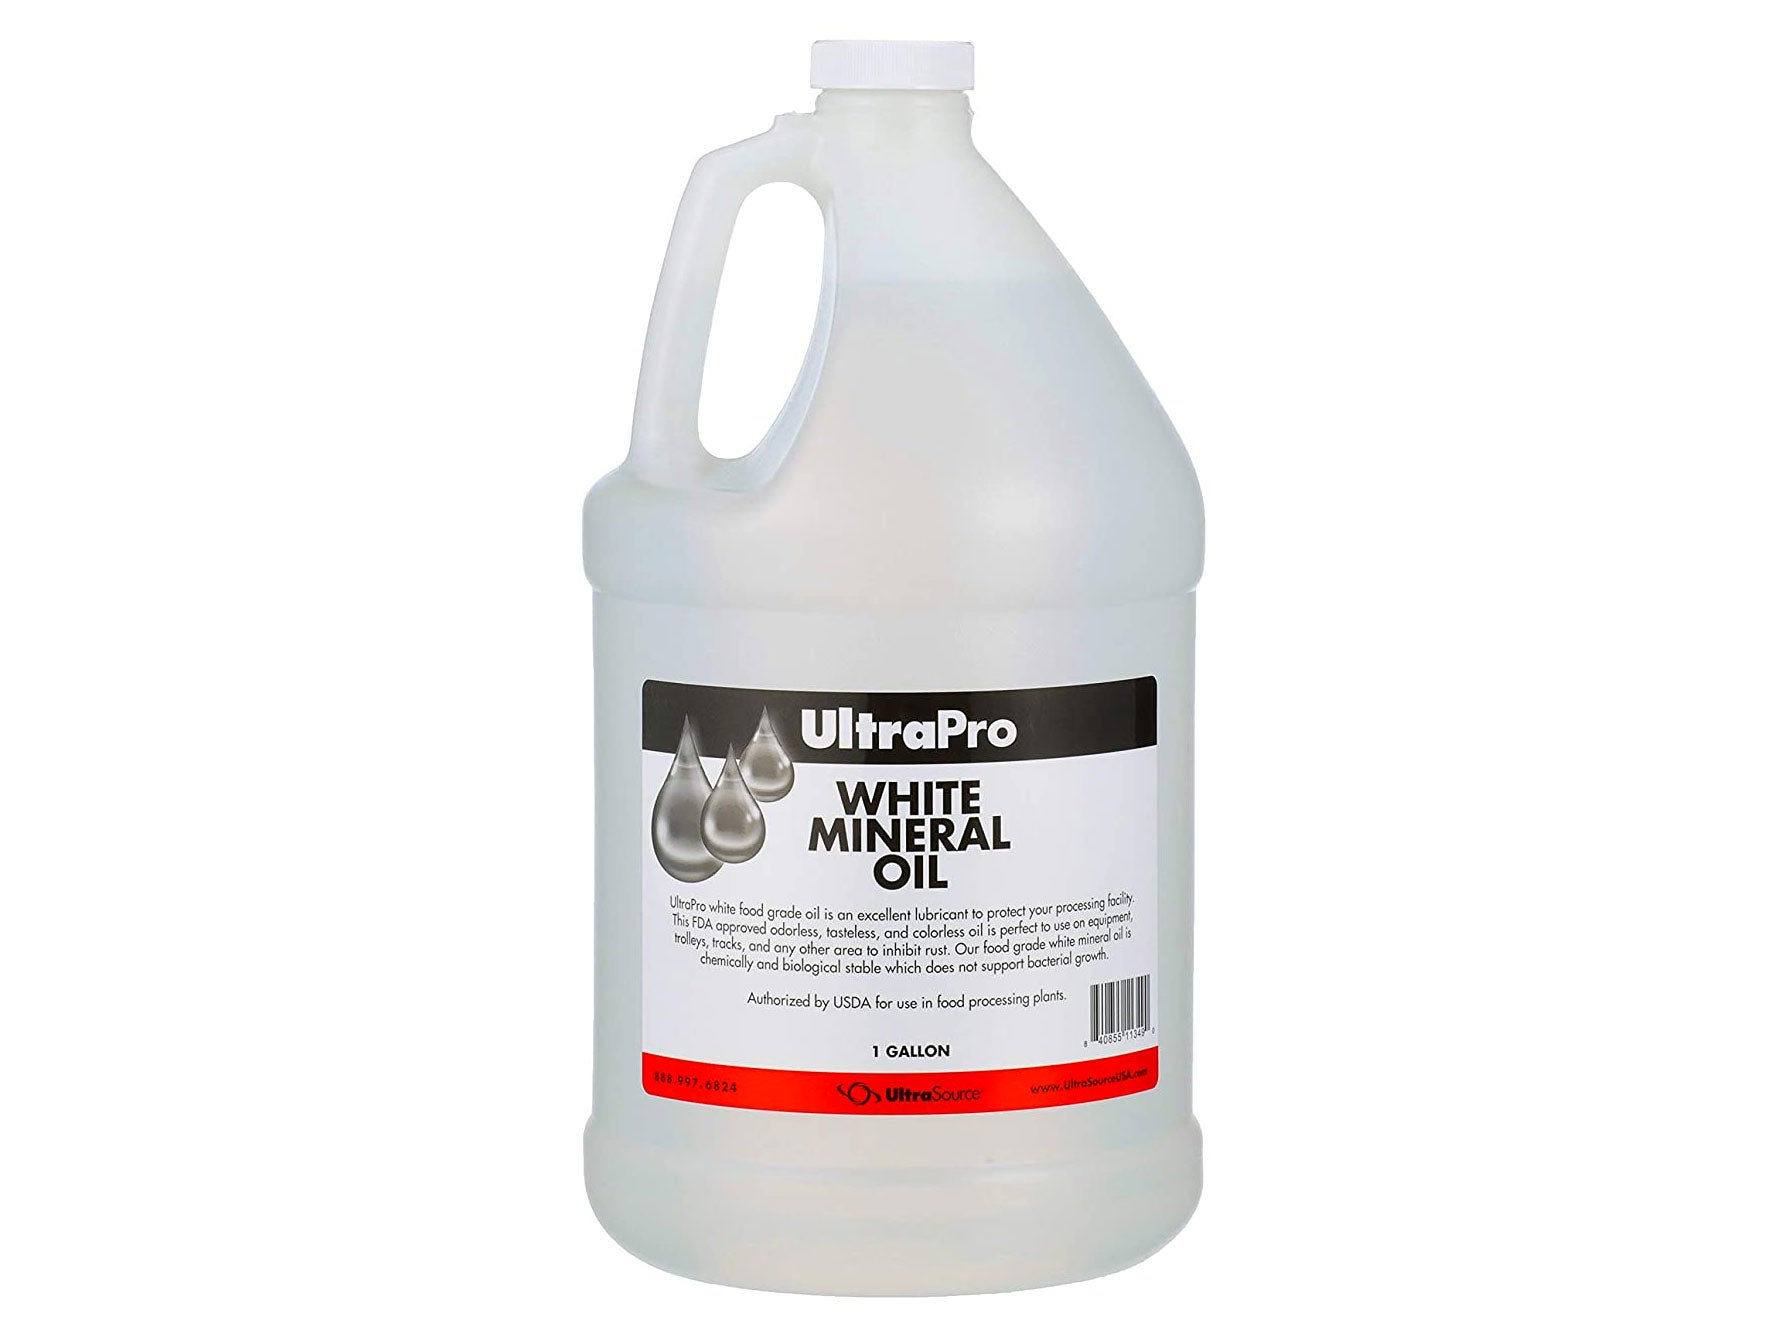 UltraPro Food Grade Mineral Oil